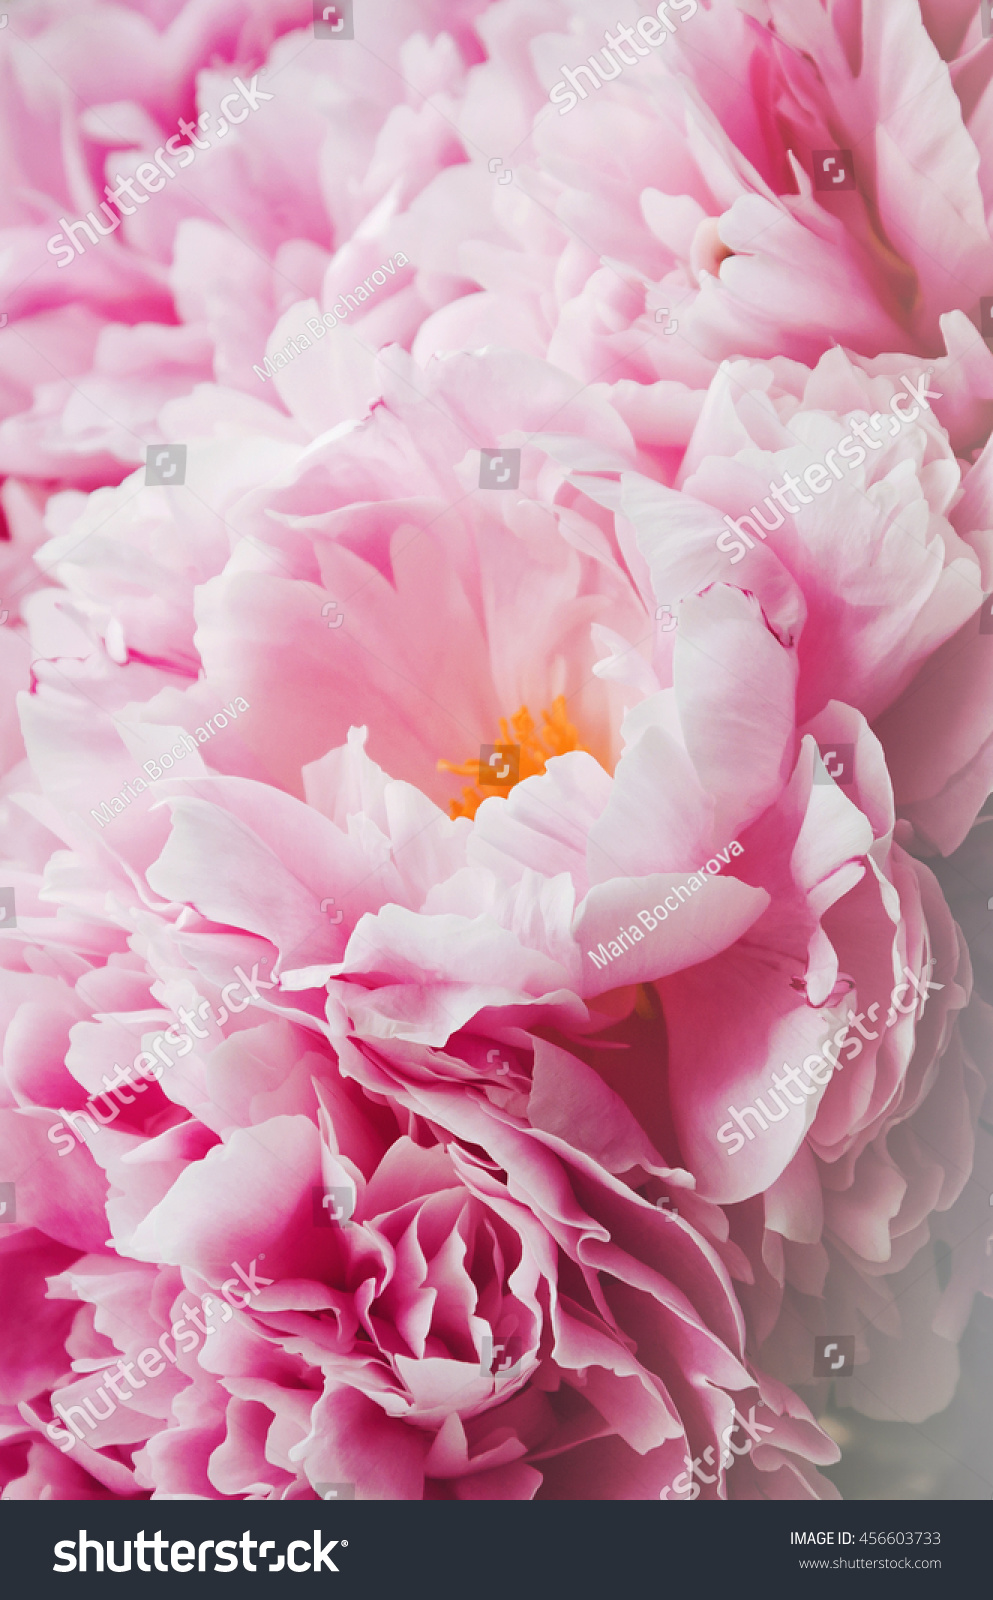 Beauty bunch pink peonies peony flowers stock photo 456603733 beauty bunch of pink peonies peony flowers floral background spring or summer lovely bouquet dhlflorist Images